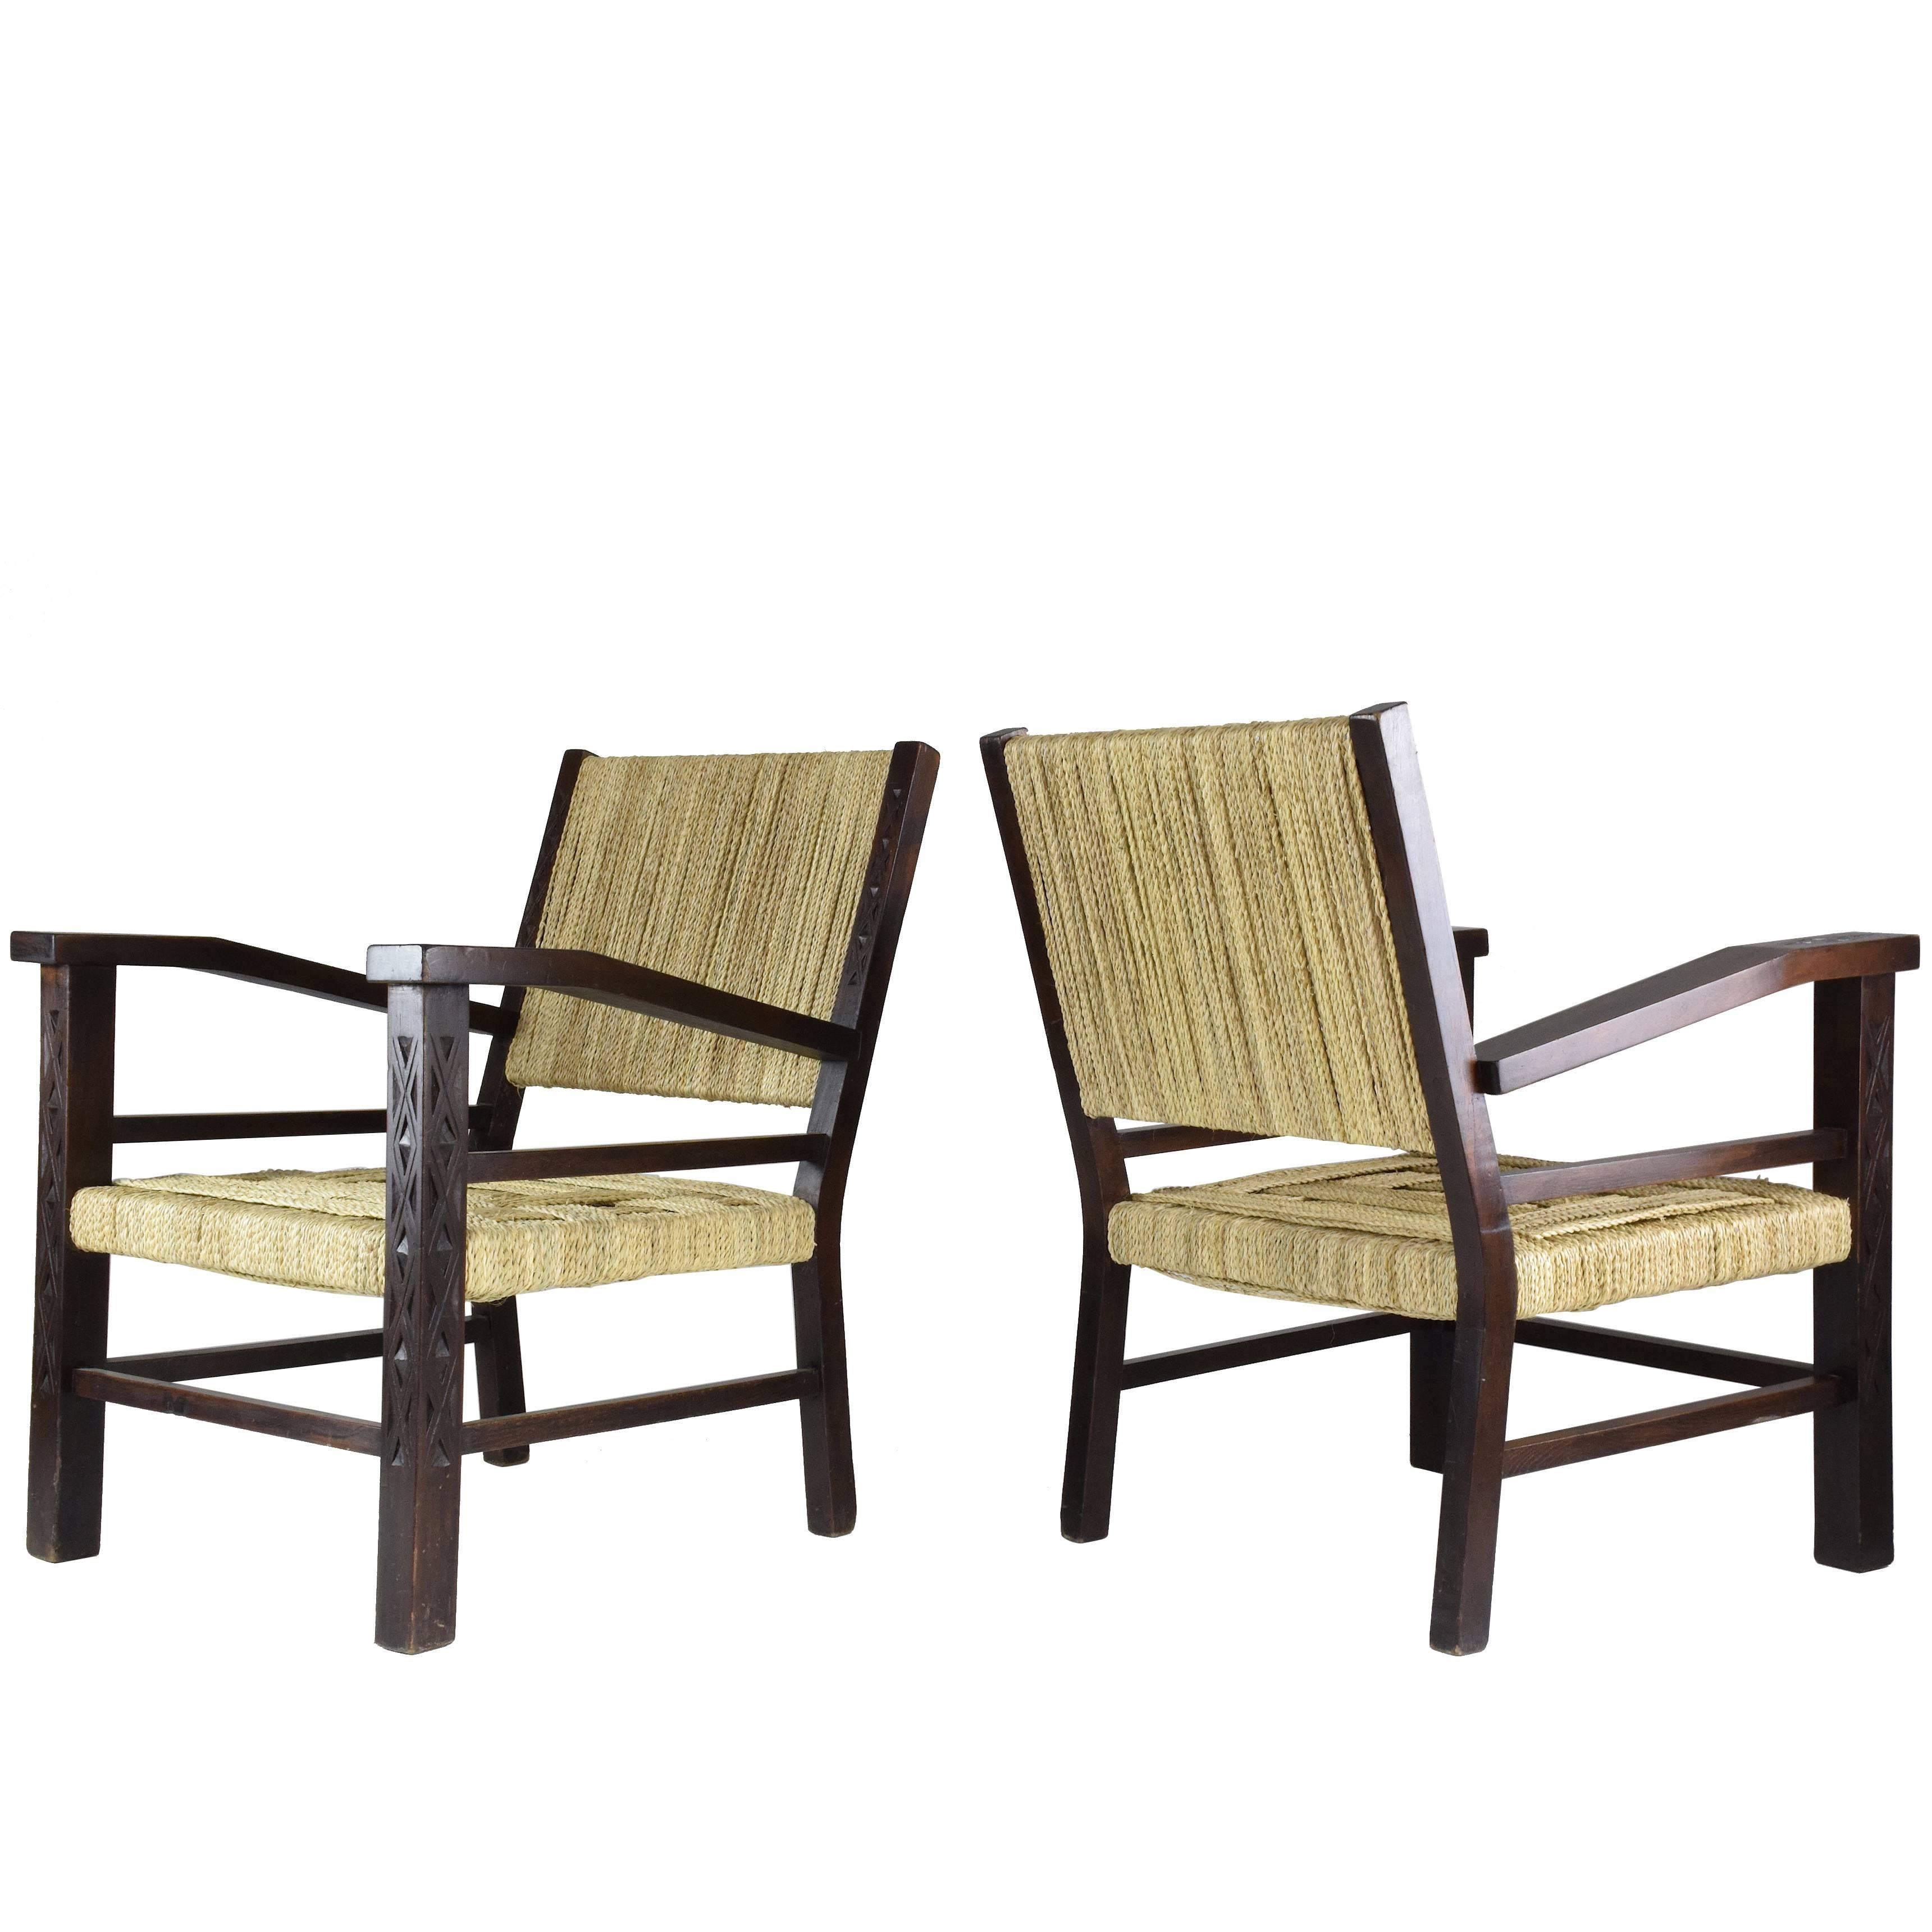 French Pair of Art Deco Armchairs by Francis Jourdain, 1930's